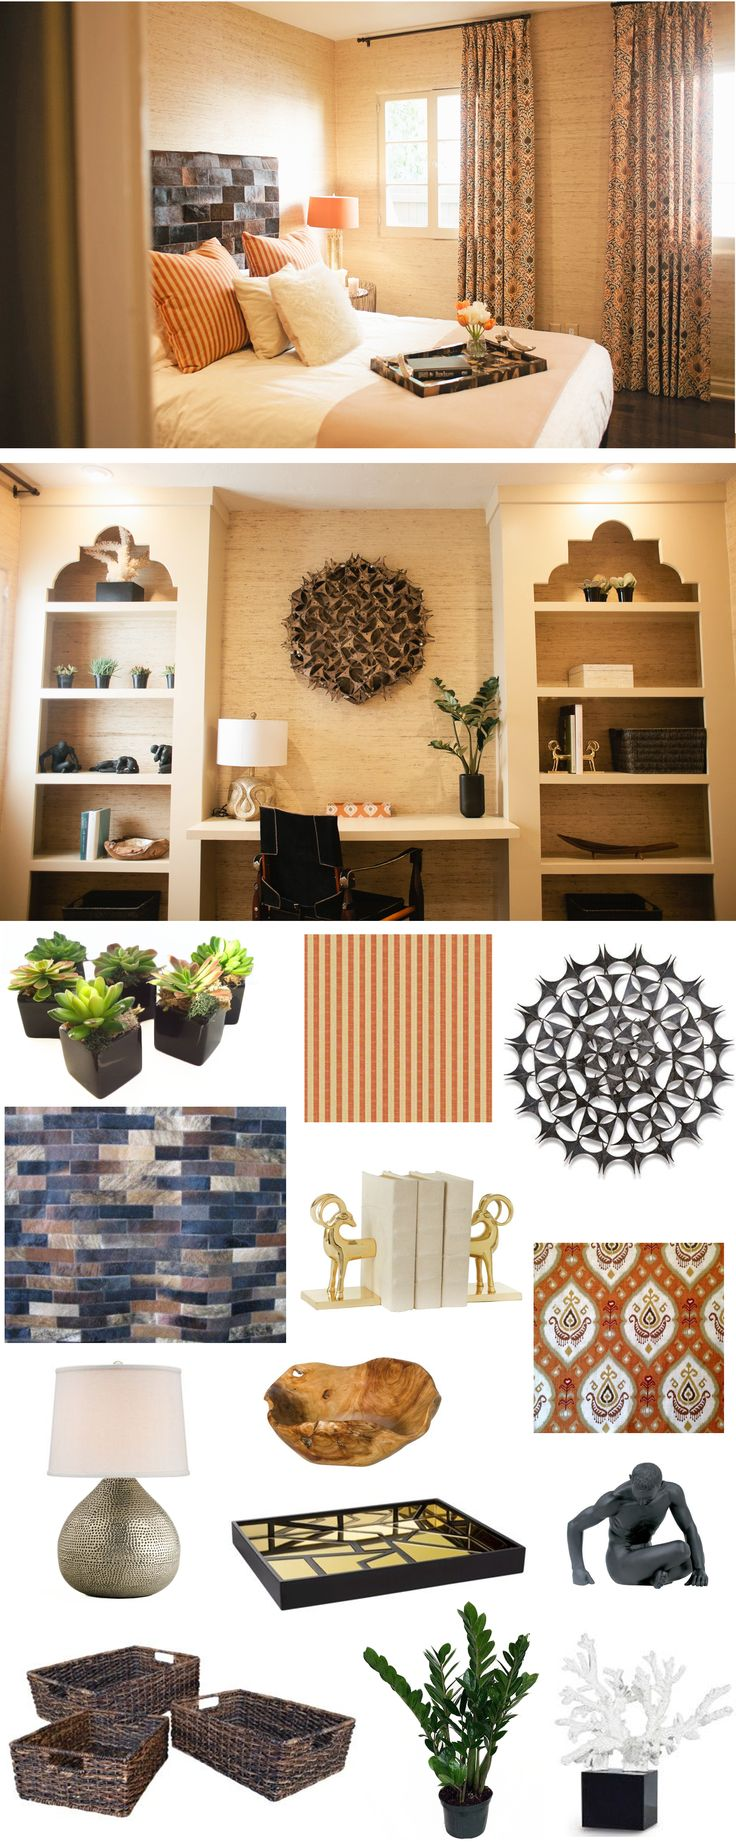 Craftsman homes for american dream builders fans zillow blog - Room From American Dream Builders With Nate Berkus Recreated On A Budget